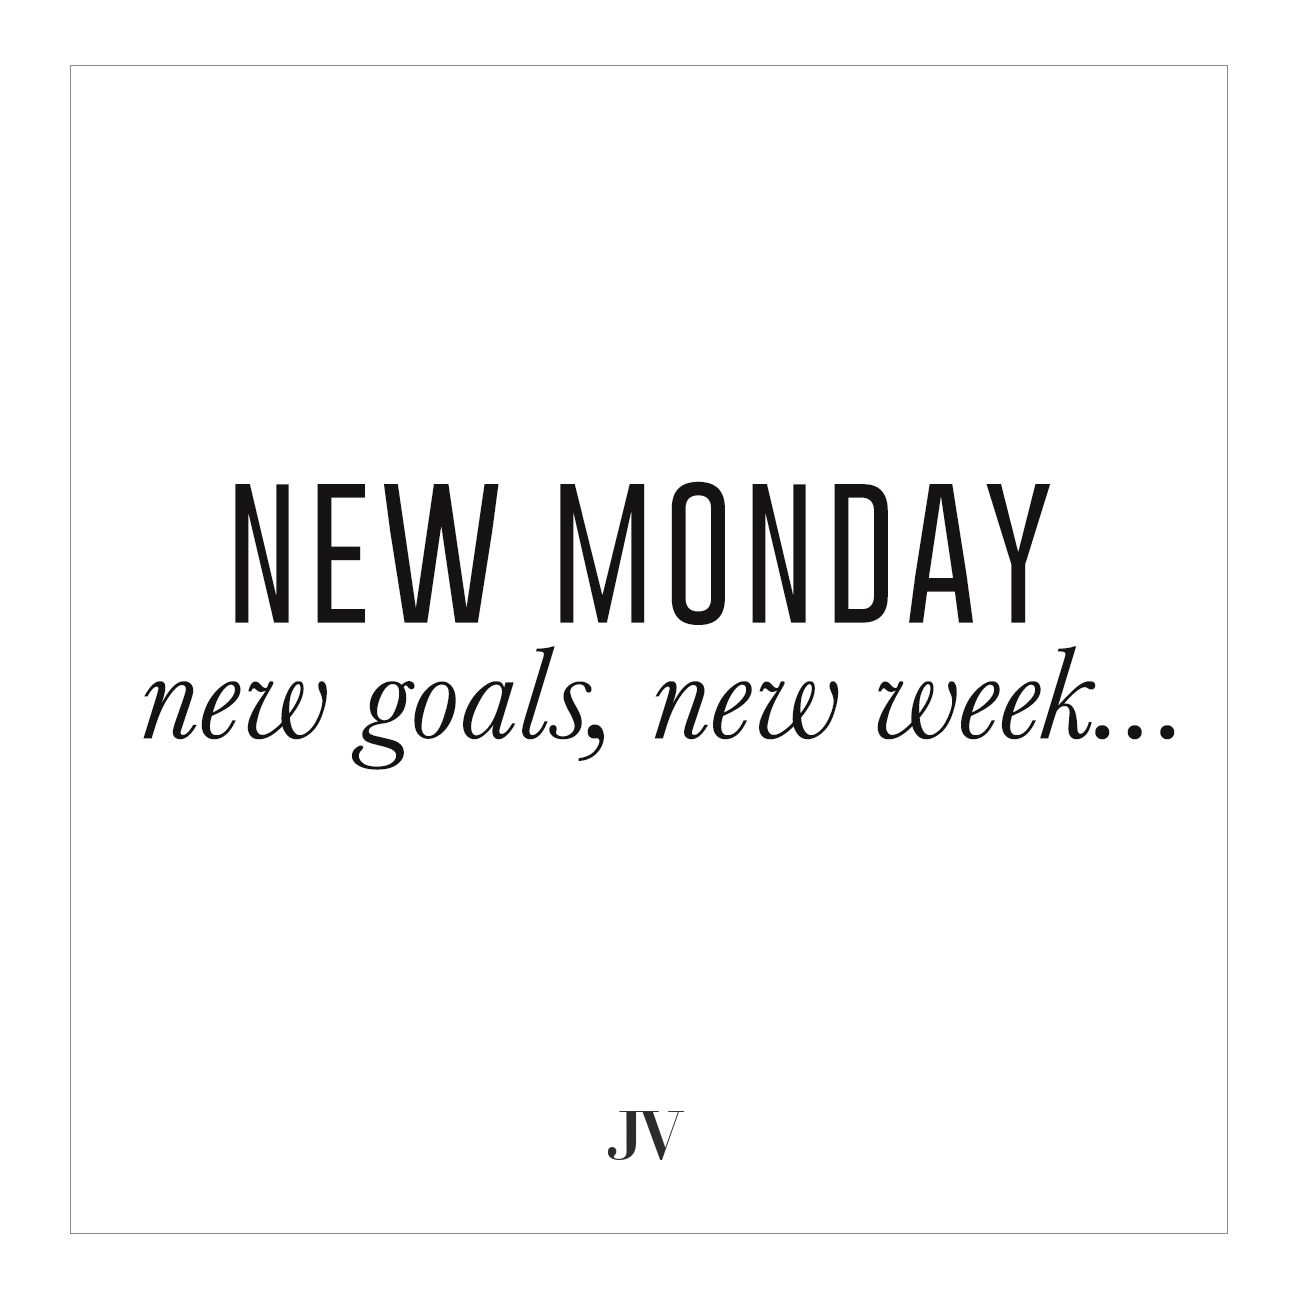 Week Quotes Josh V  New Monday New Goals New Week  Quote  Days Of The Week